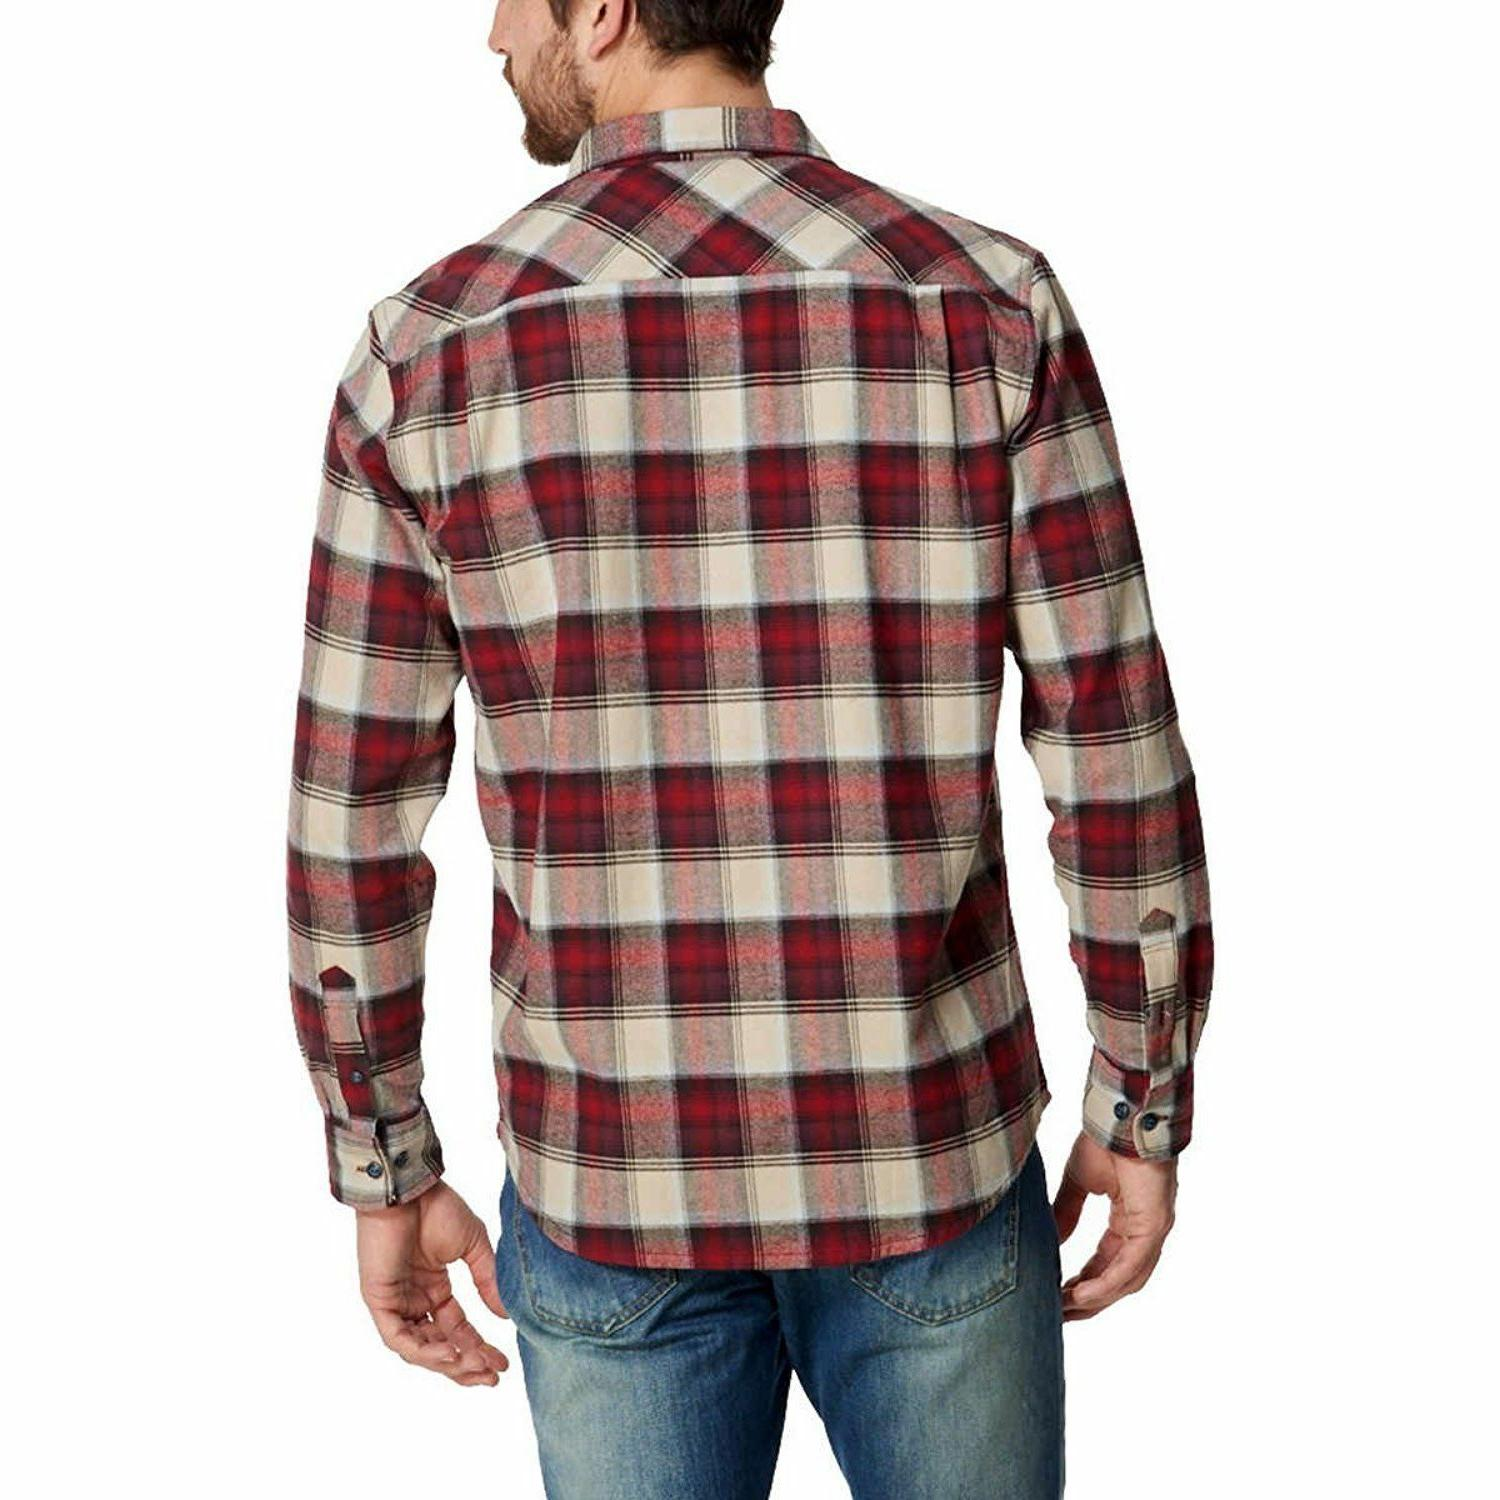 Sleeve Lightweight Plaid Shirts E33